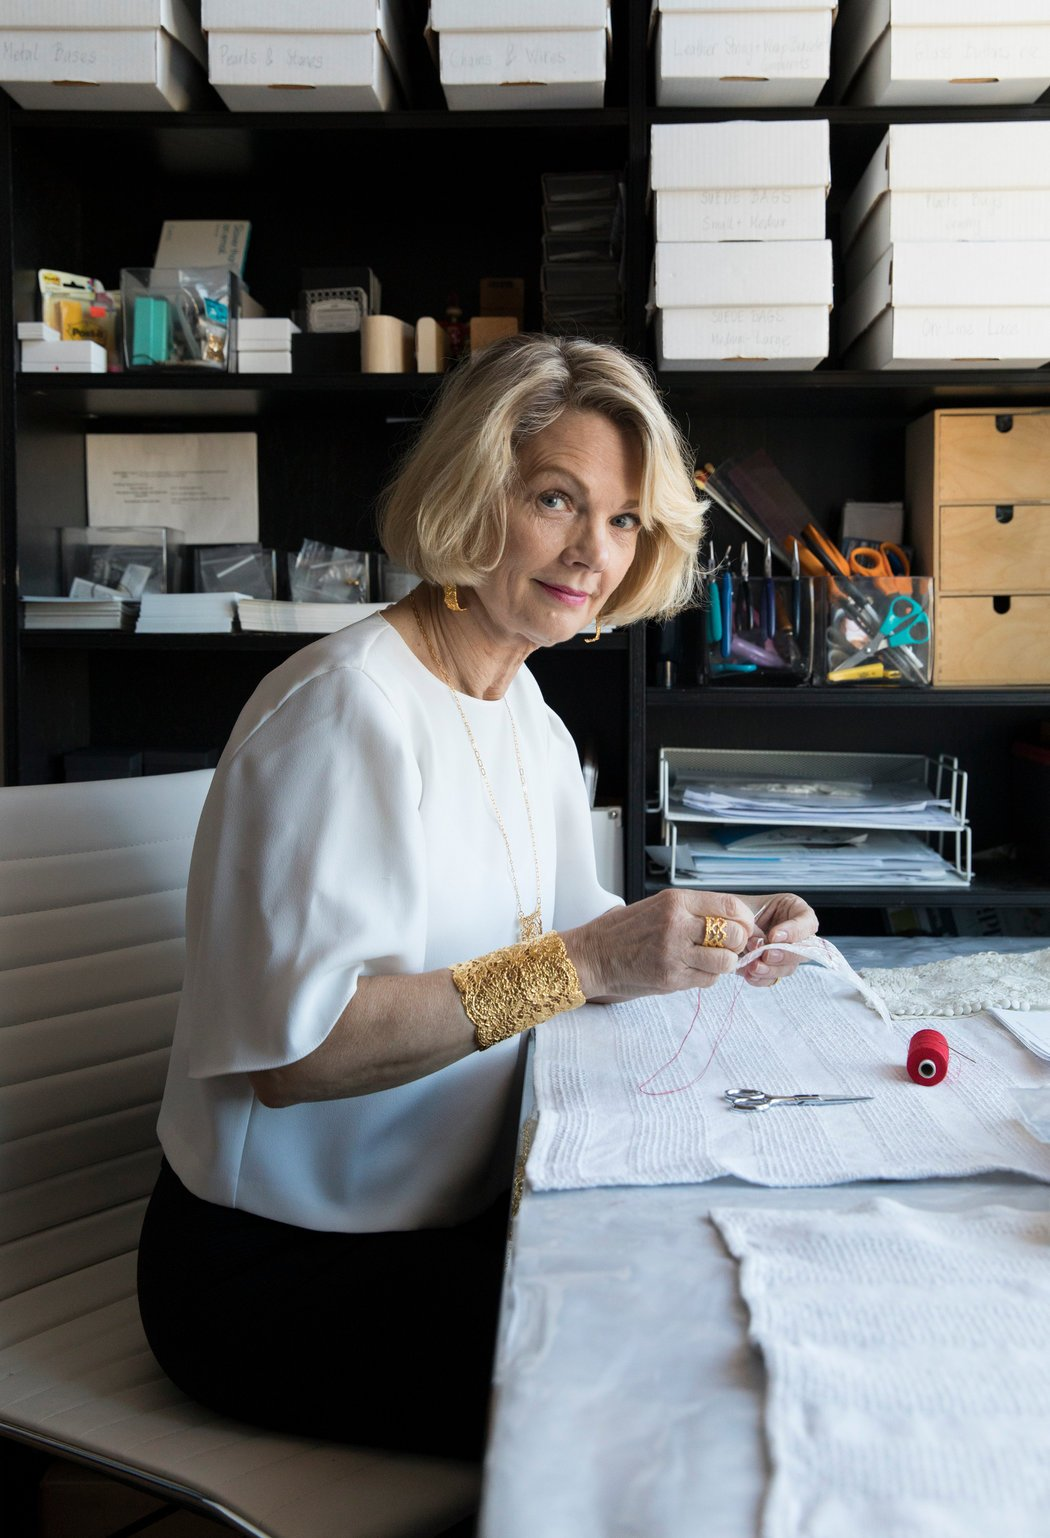 The jewelry maker Monika Knutsson in her apartment and studio in New York. Credit Stefania Curto for The New York Times